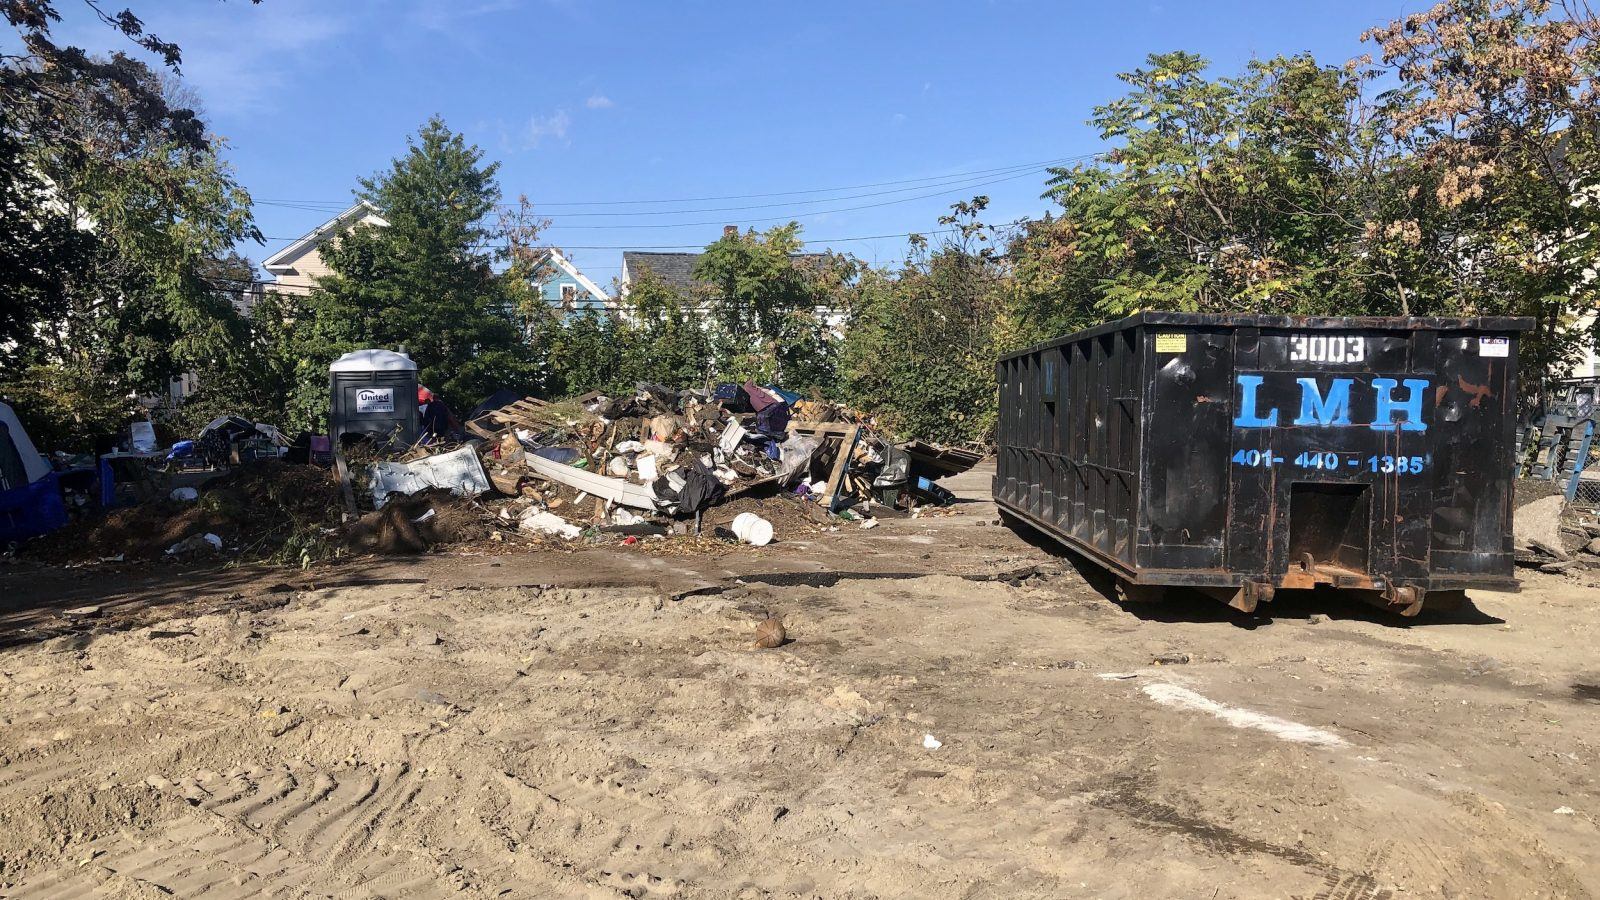 City officials surprised as unhoused encampment on Wilson St is half bulldozed by developer Knight & Swan